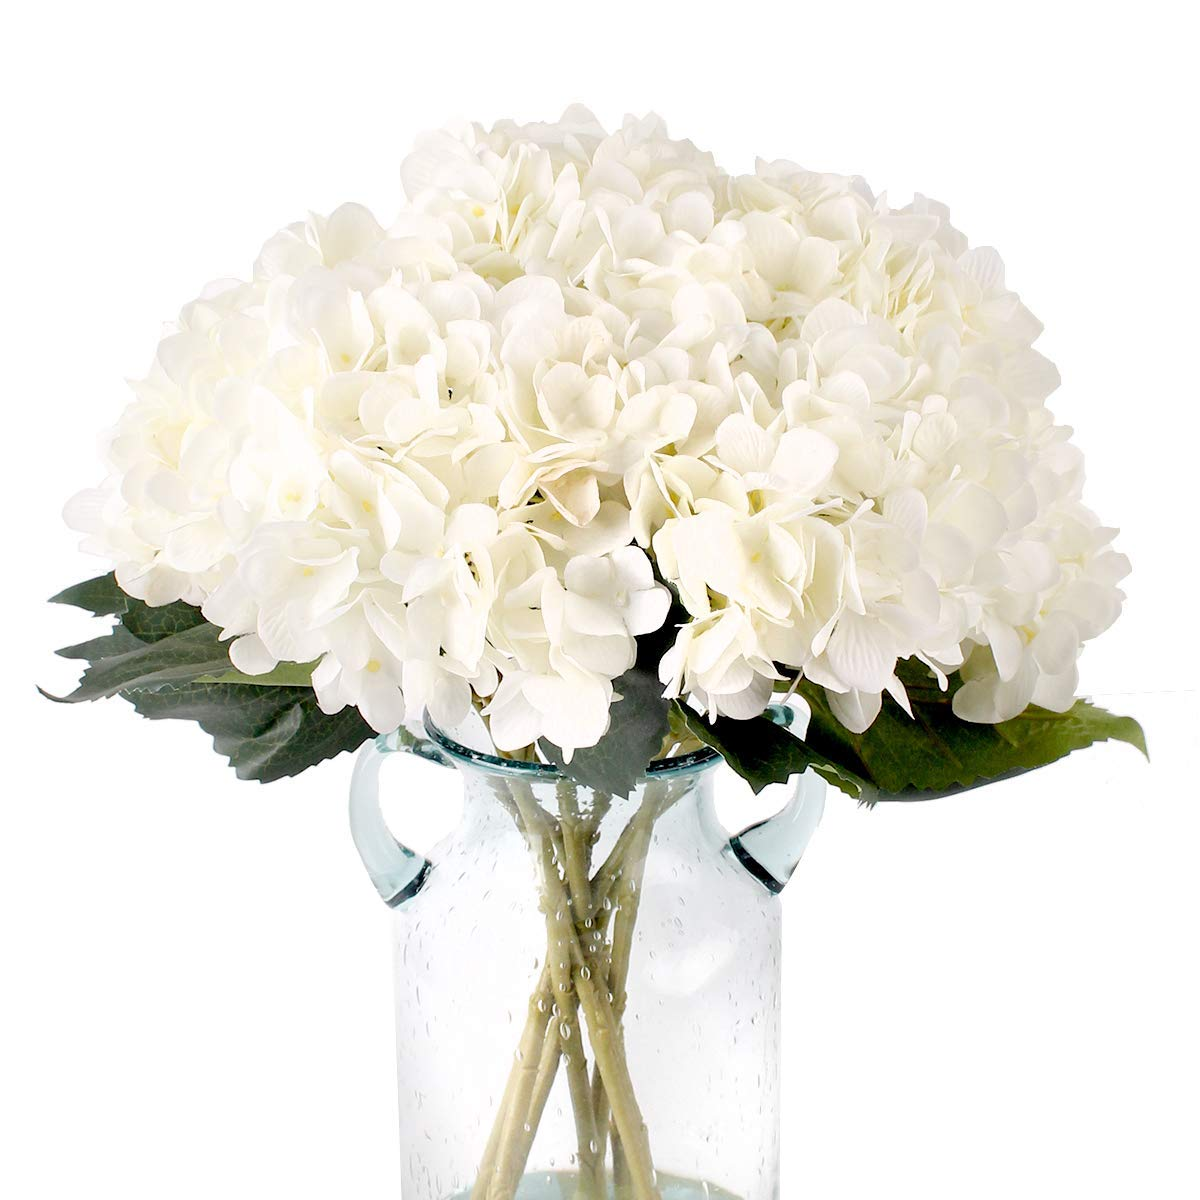 Blooming Paradise Pack of 3 Artificial Fake Flowers Plants Silk Hydrangea Arrangements Wedding Bouquets Decorations Plastic Floral Table Centerpieces Home Kitchen Garden Party Festival Bar(White) by Blooming Paradise